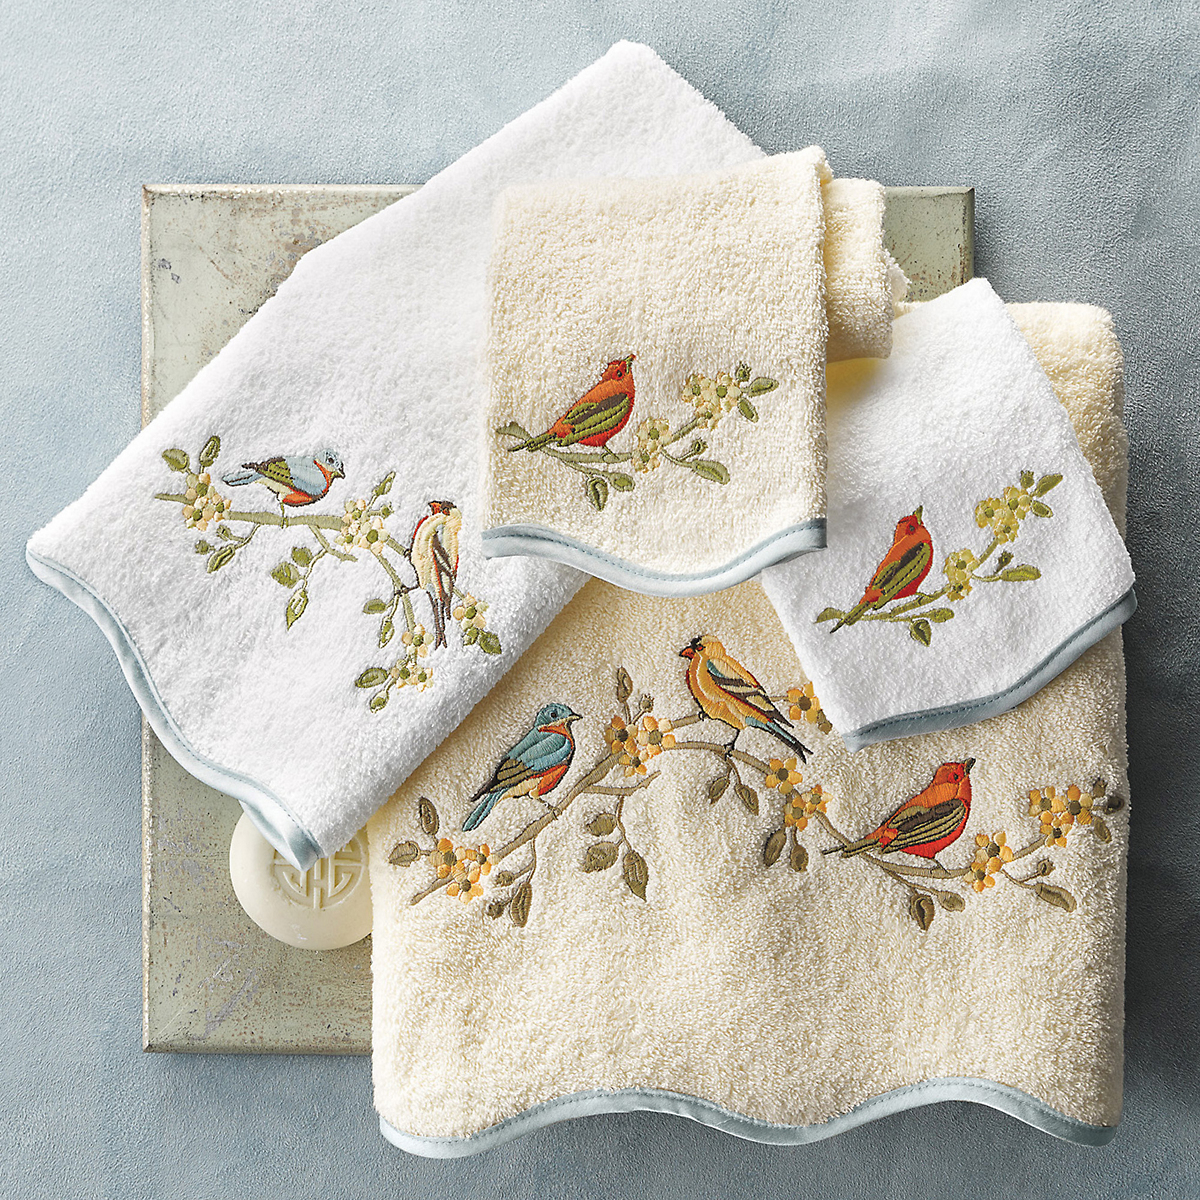 Songbird Embroidered Towels